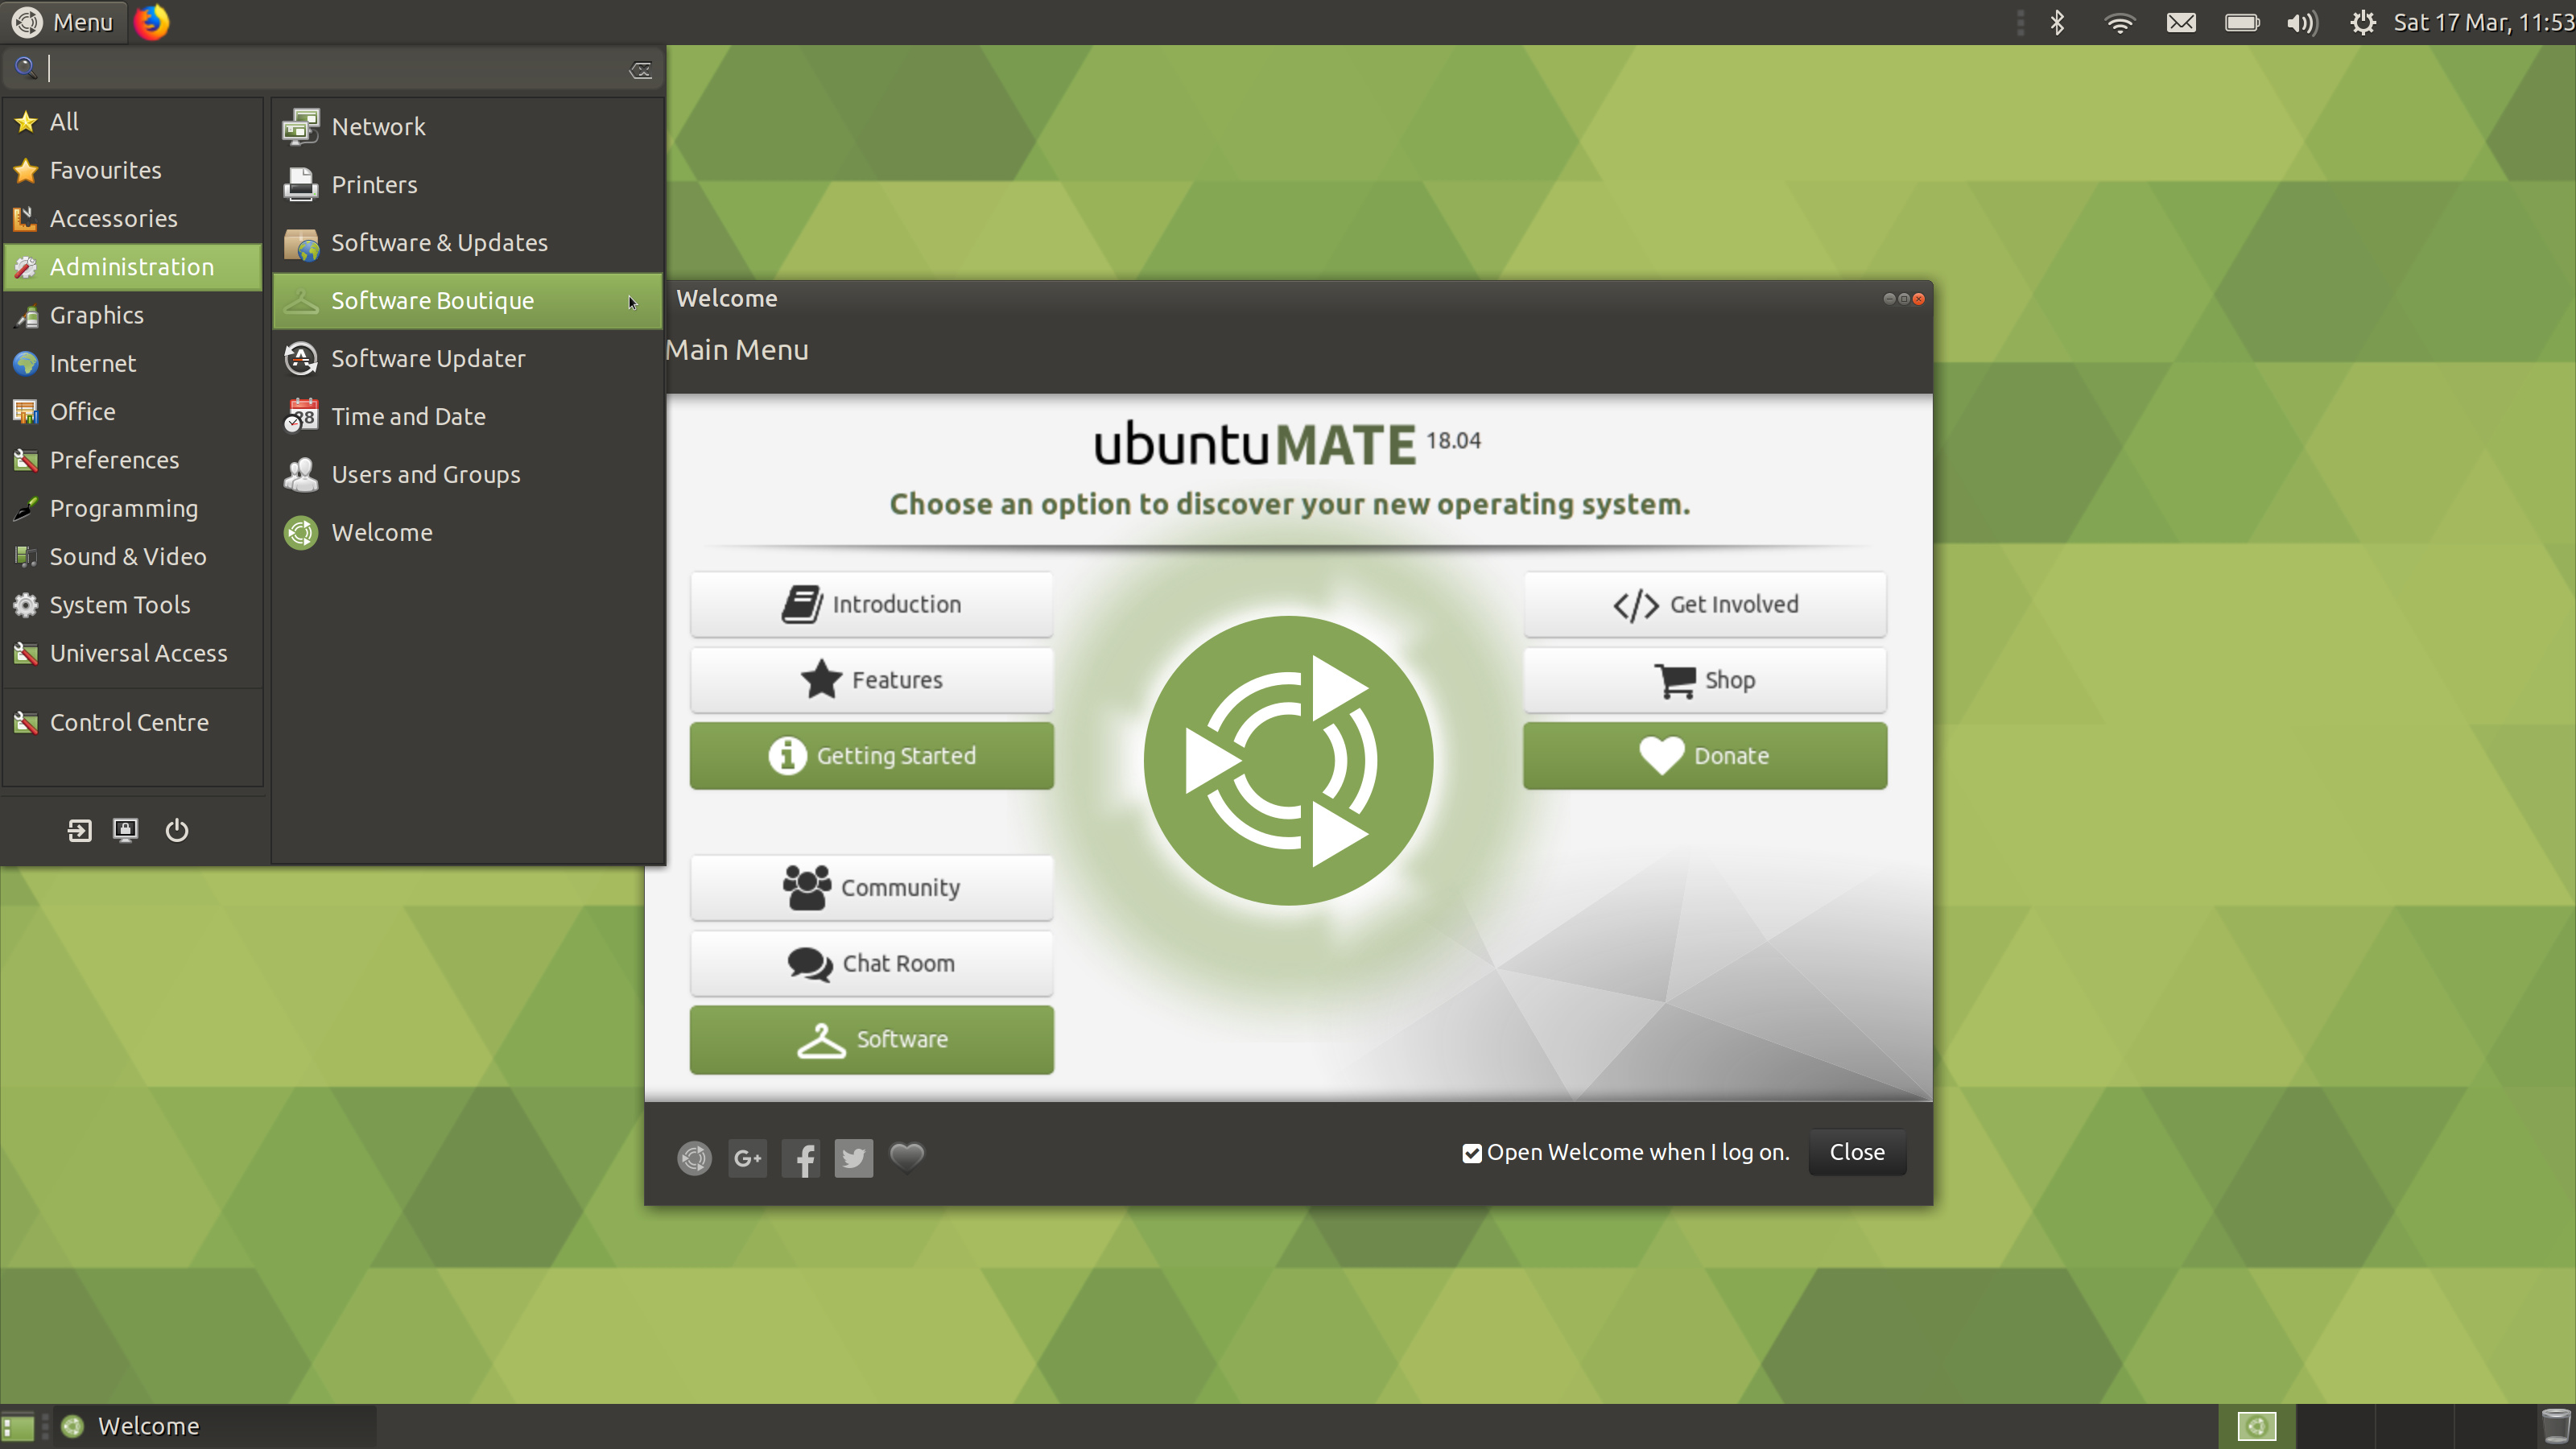 ubuntu-mate-18-04-lts-will-ship-with-a-new-default-layout-called-familiar-520281-2.jpg